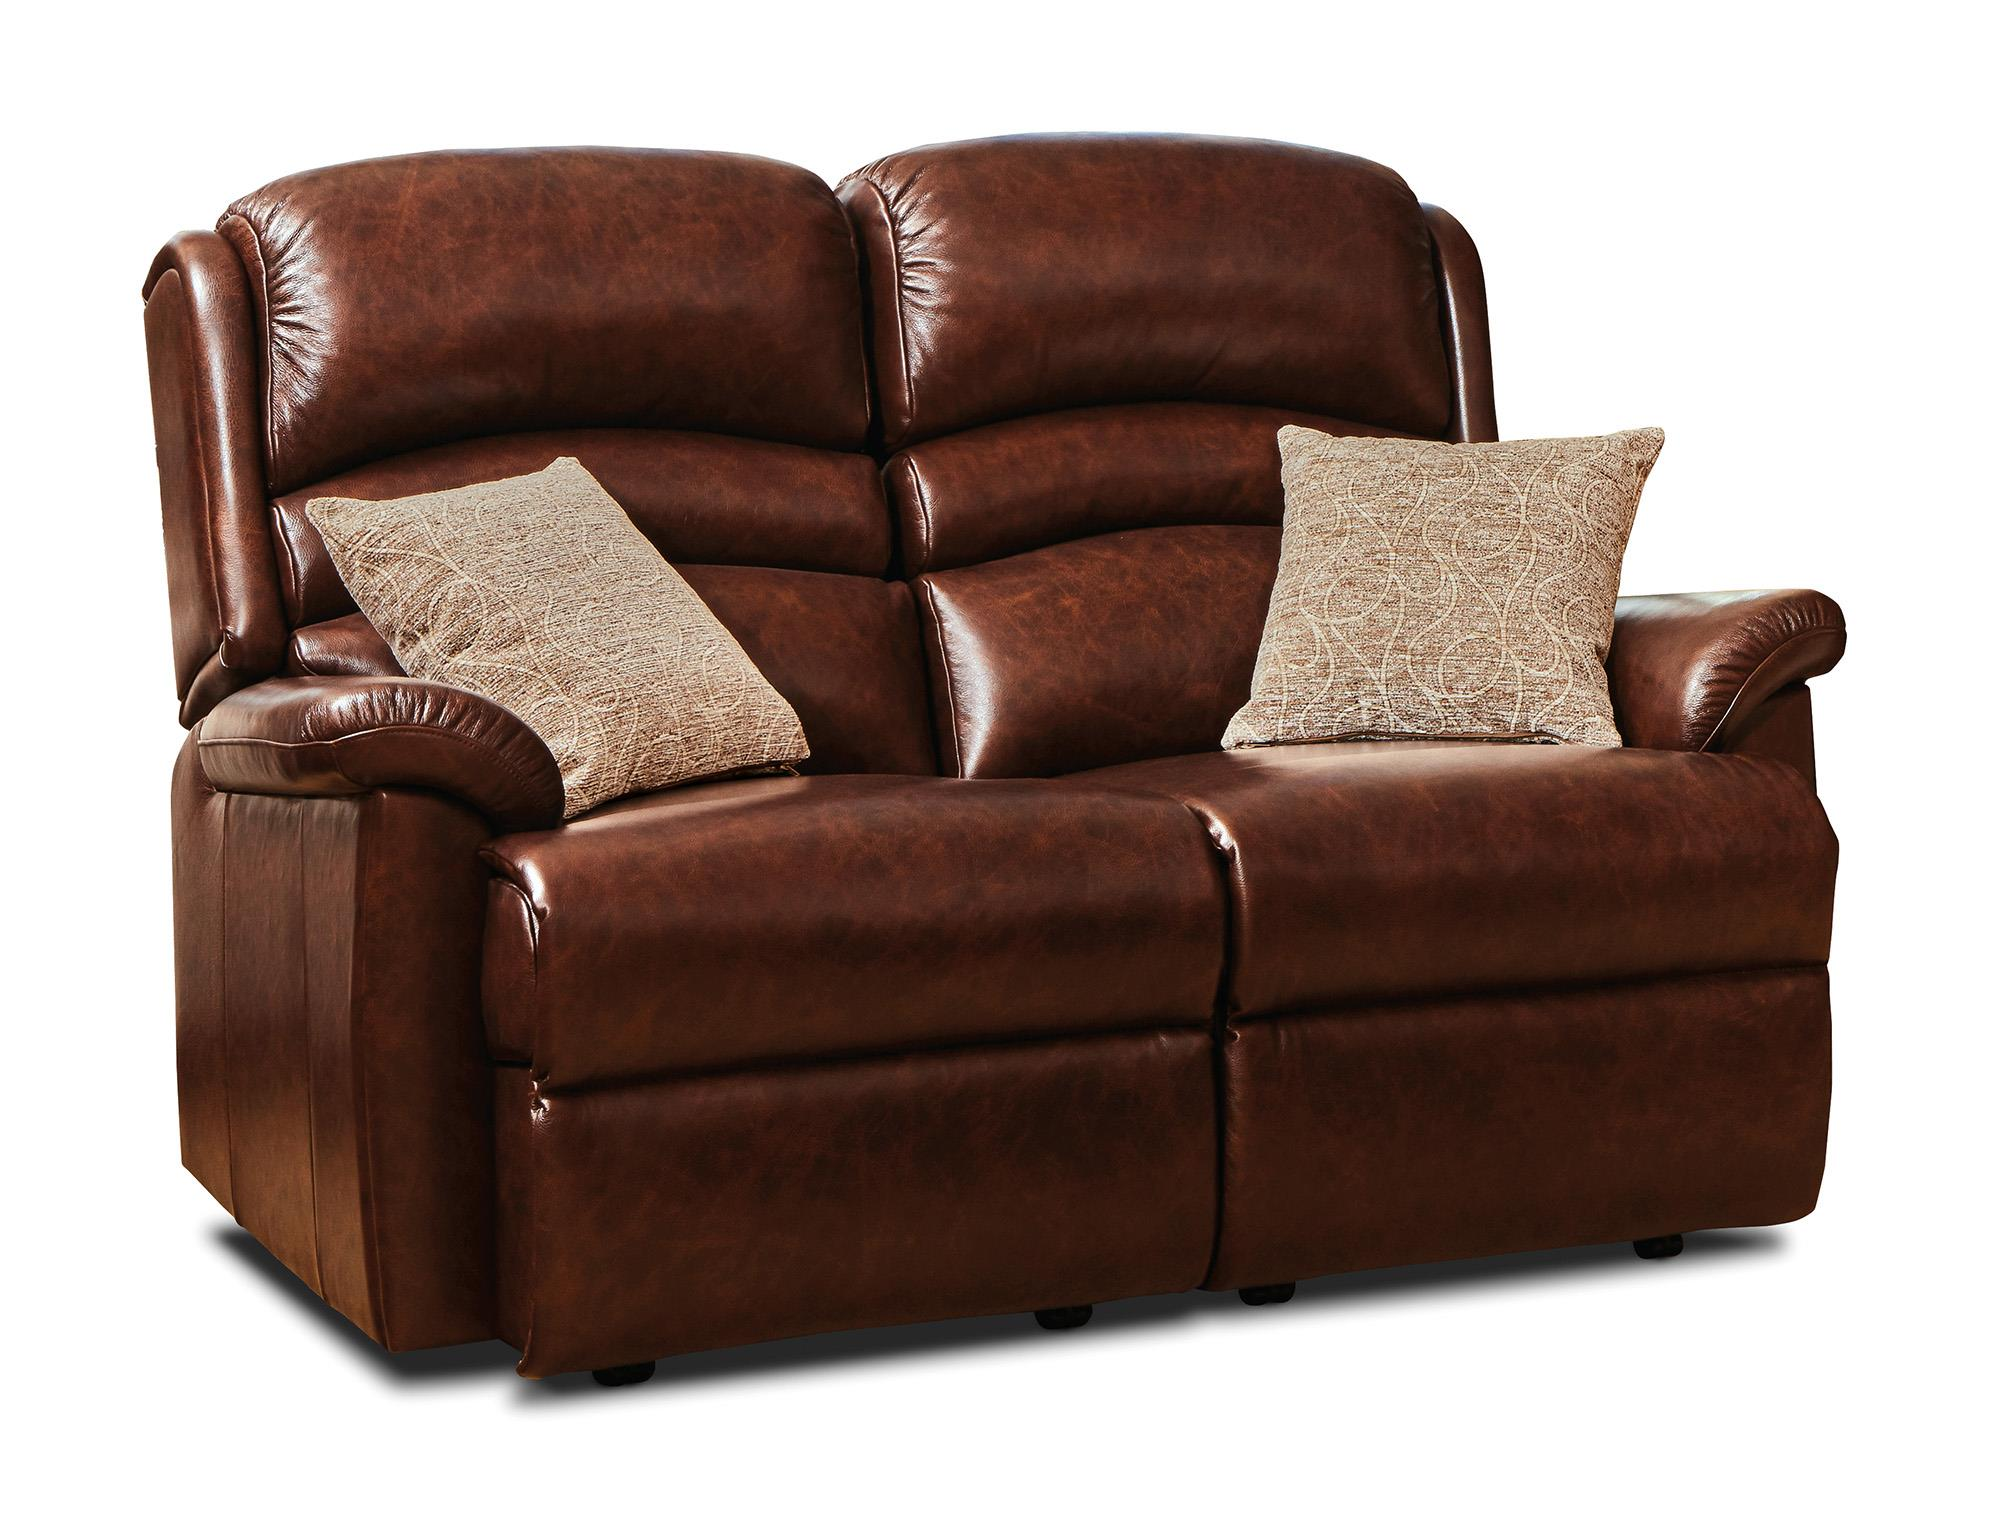 OLIVIA - 2 Seater Leather Settee